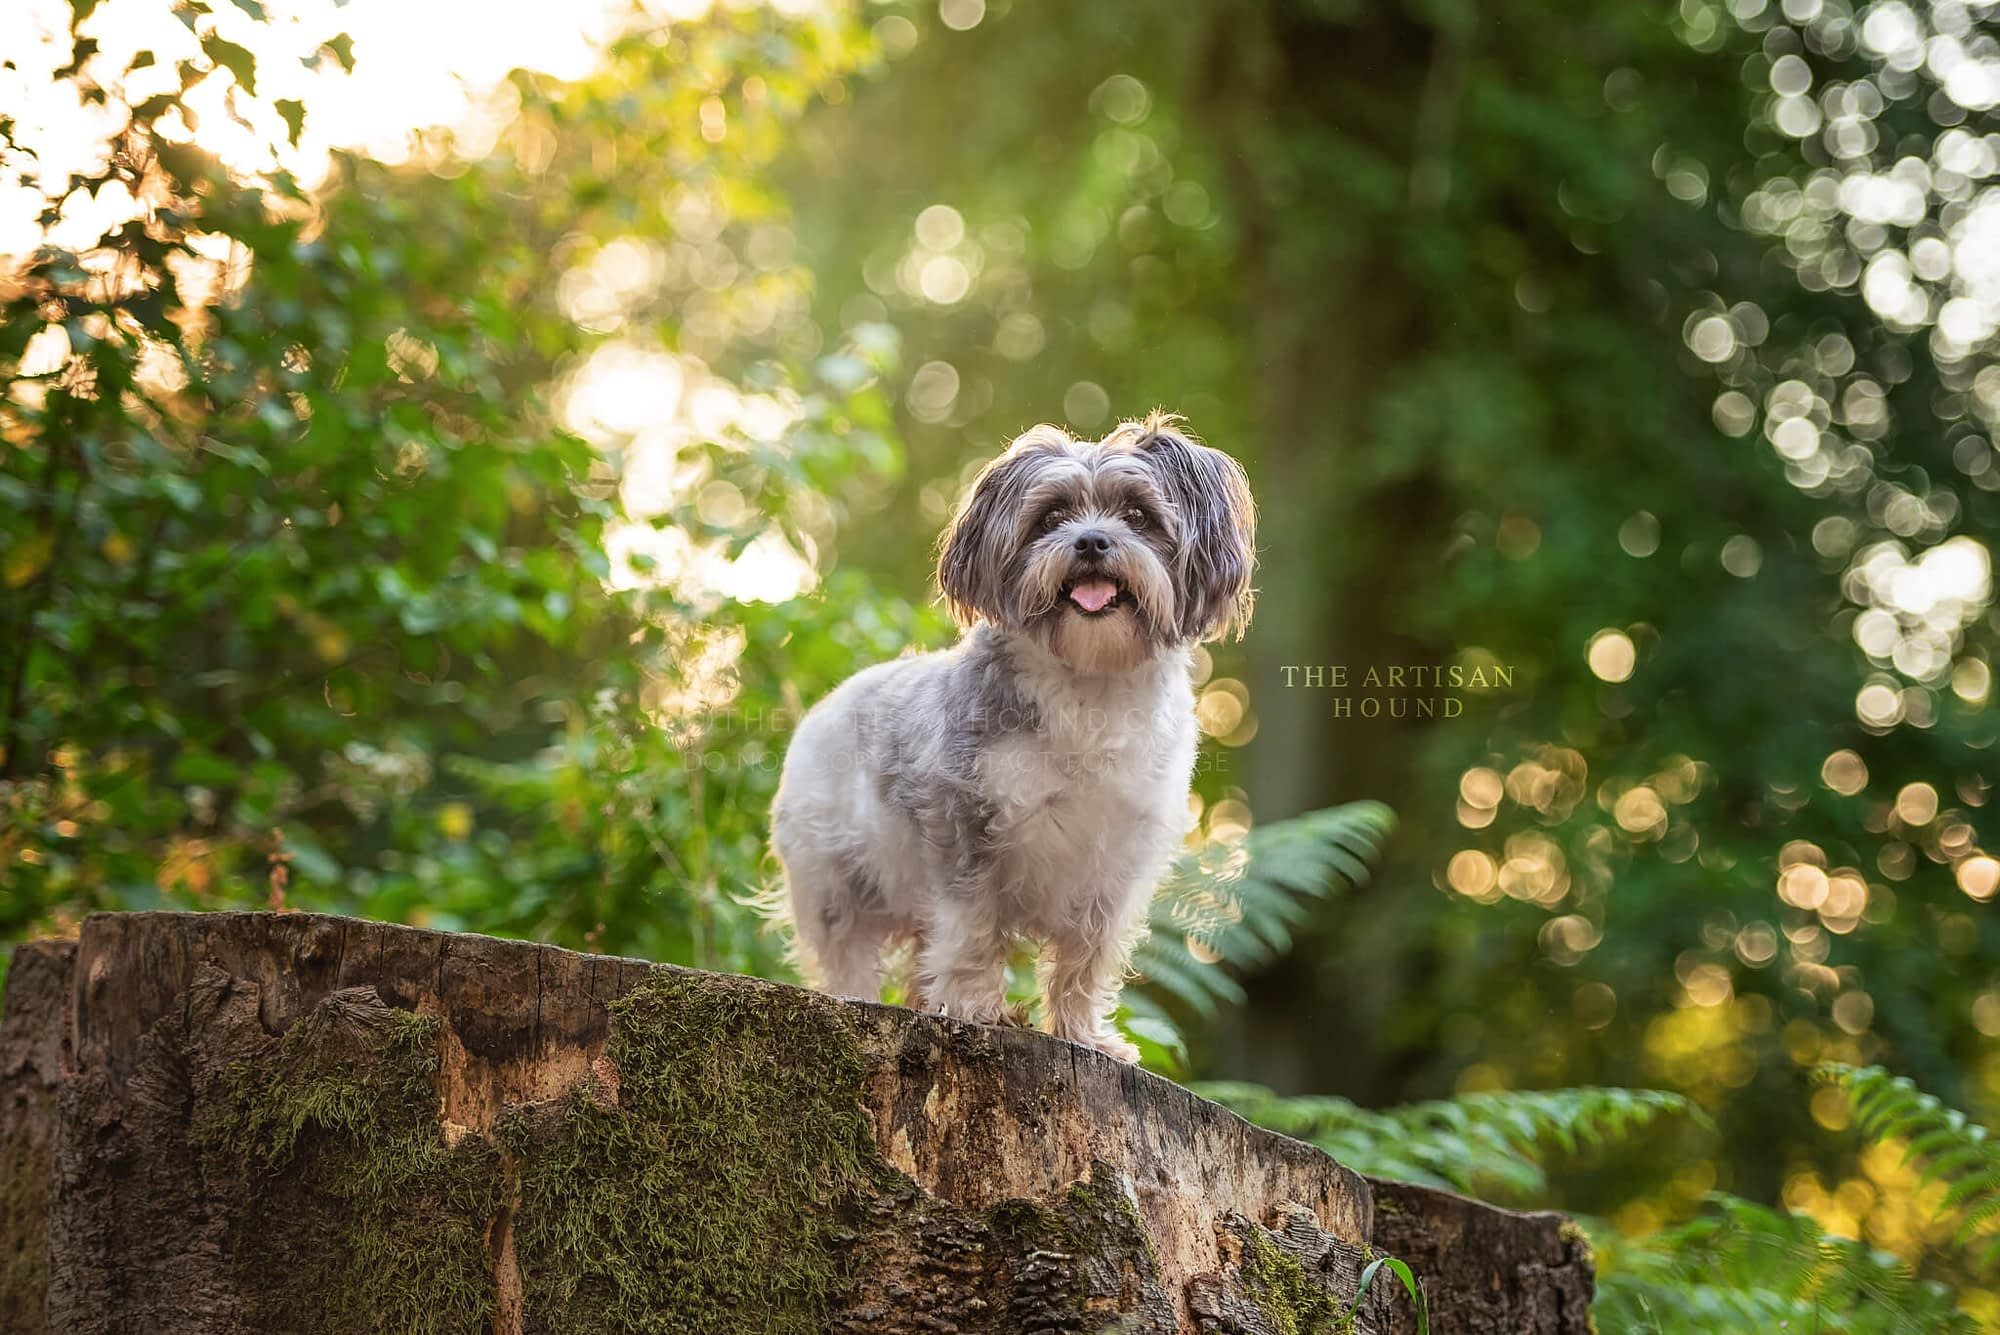 Little dog standing on tree stump in forest